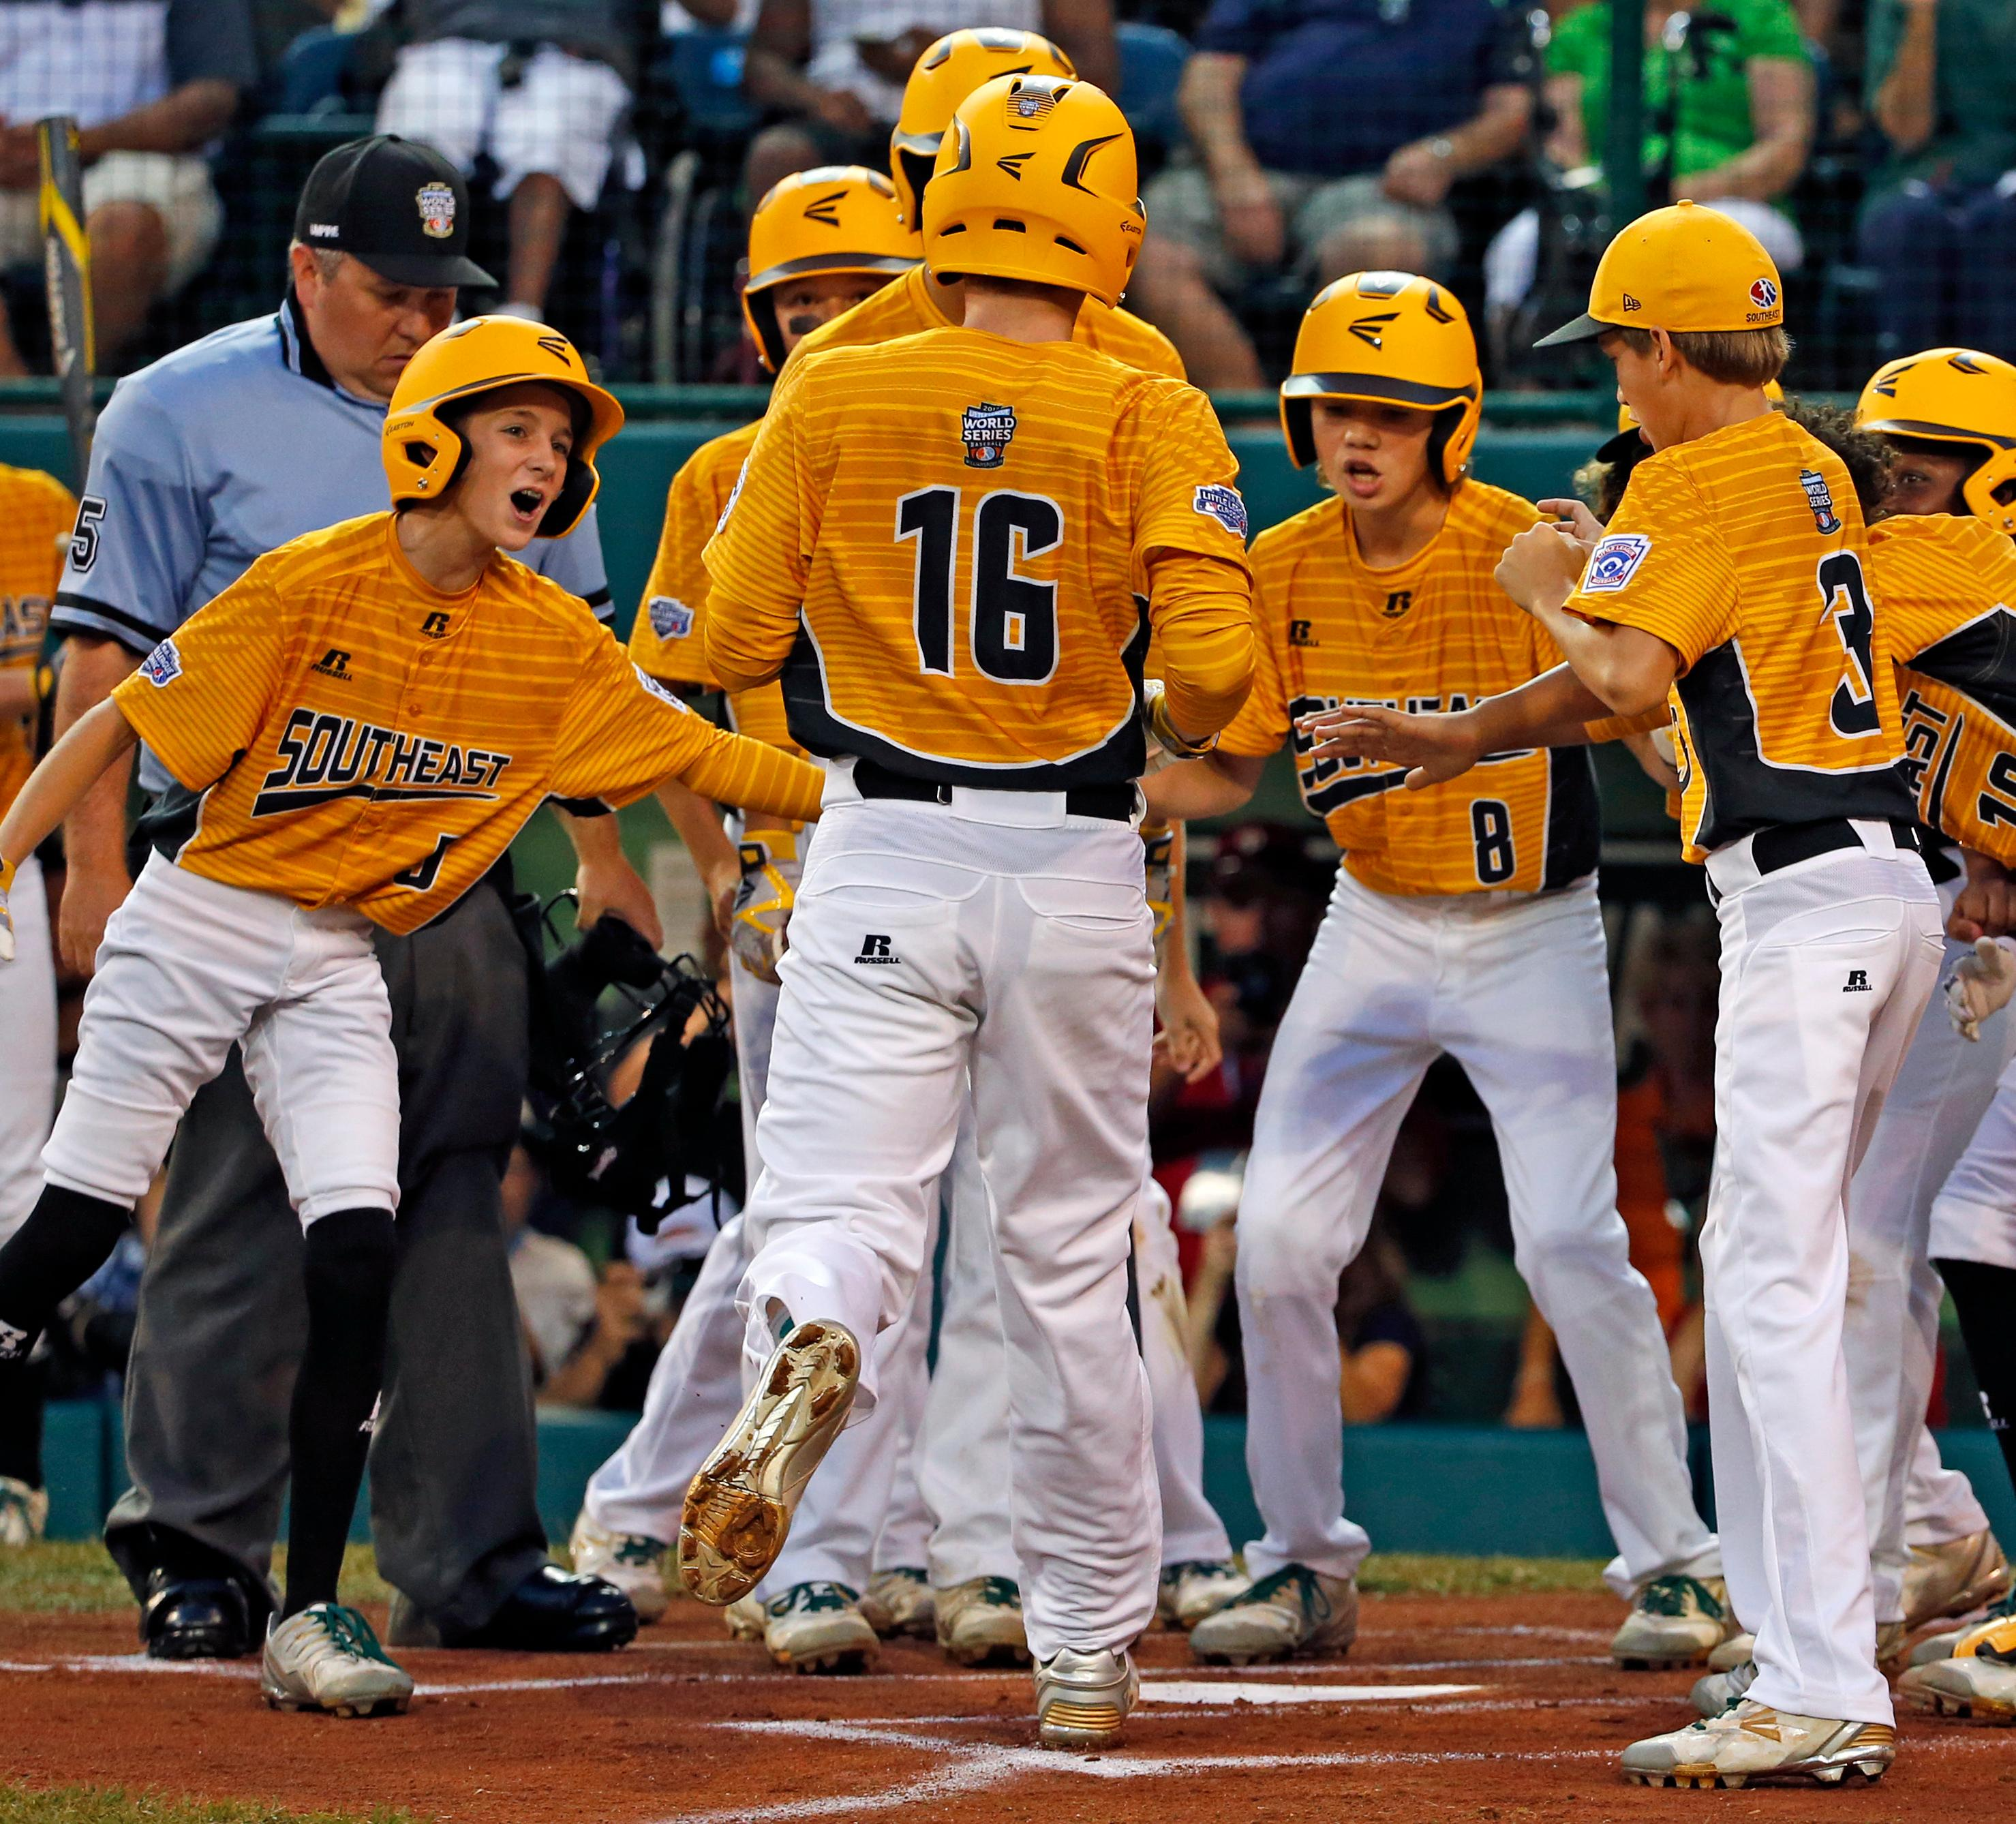 Texas rallies to beat greenville nc 6 5 at little league for Wright motor company lufkin texas